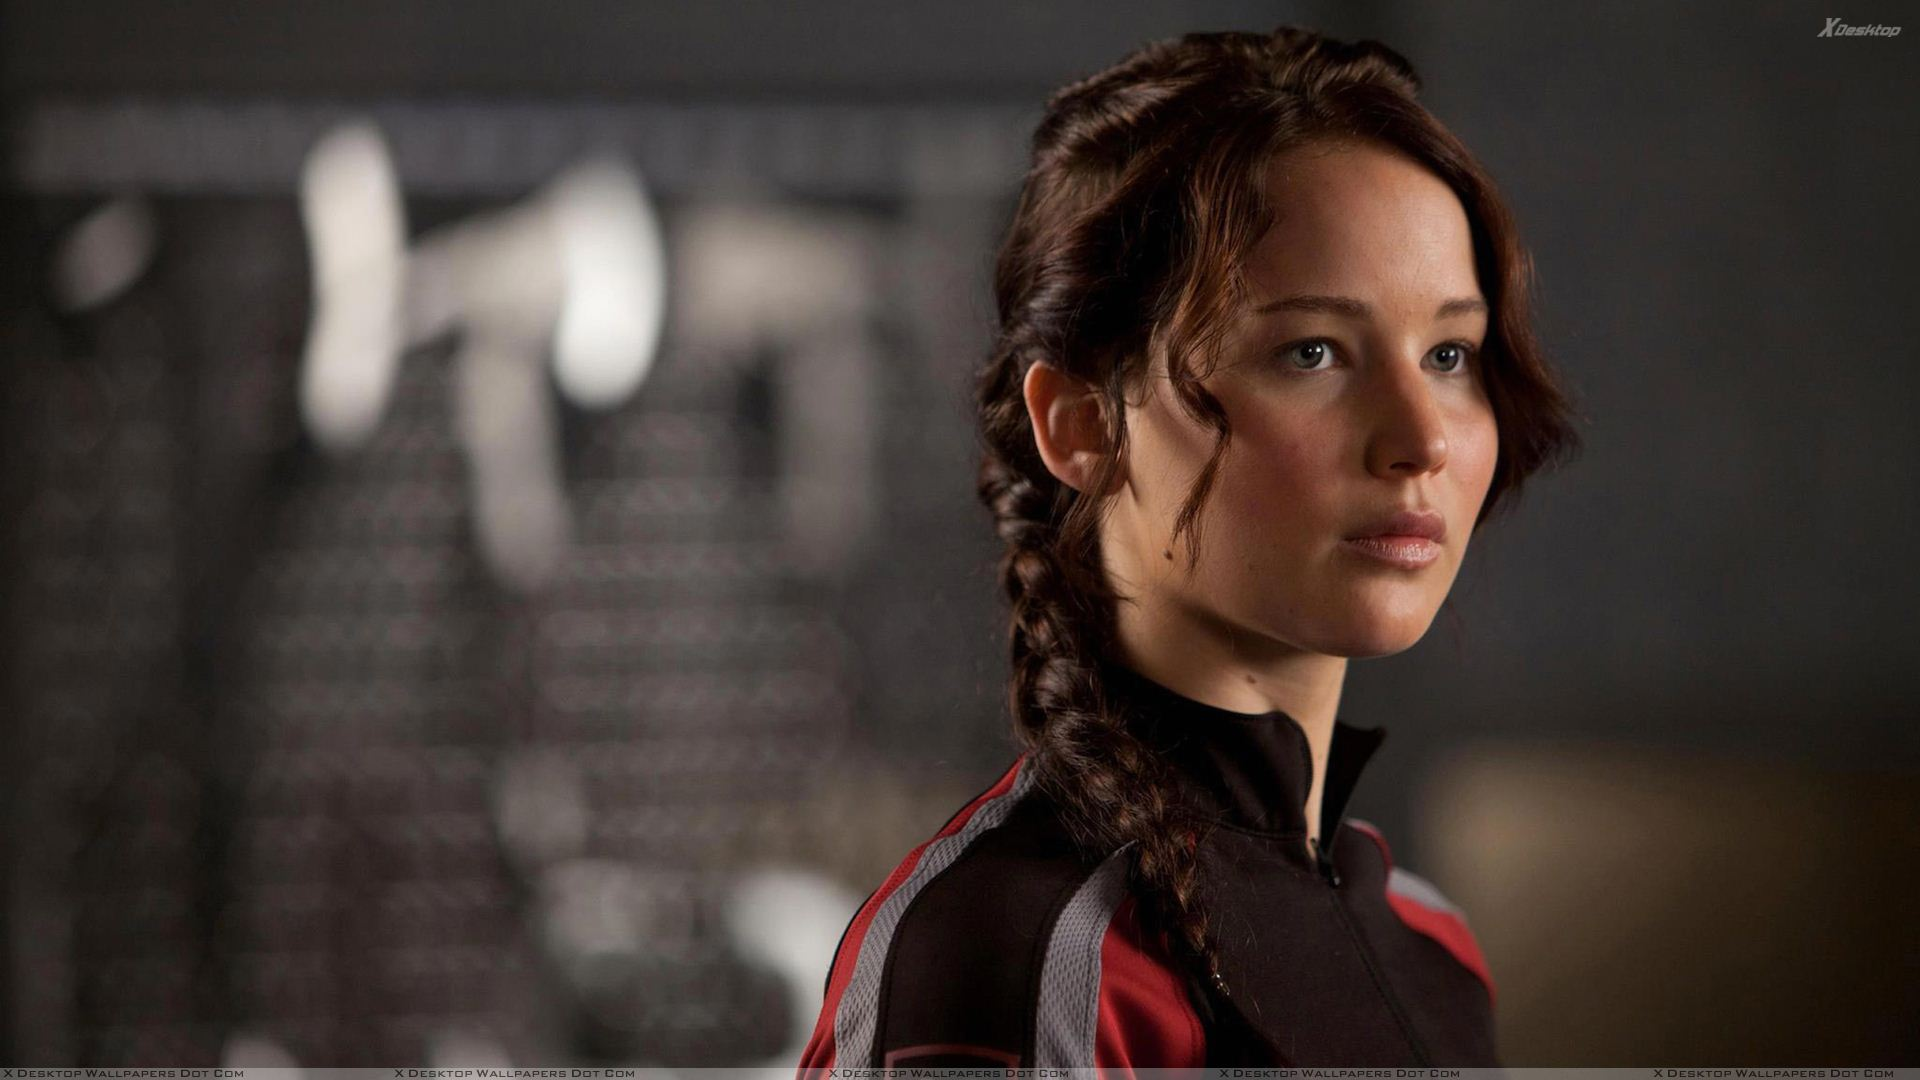 The hunger games wallpapers photos images in hd 29 nov 2012 voltagebd Choice Image